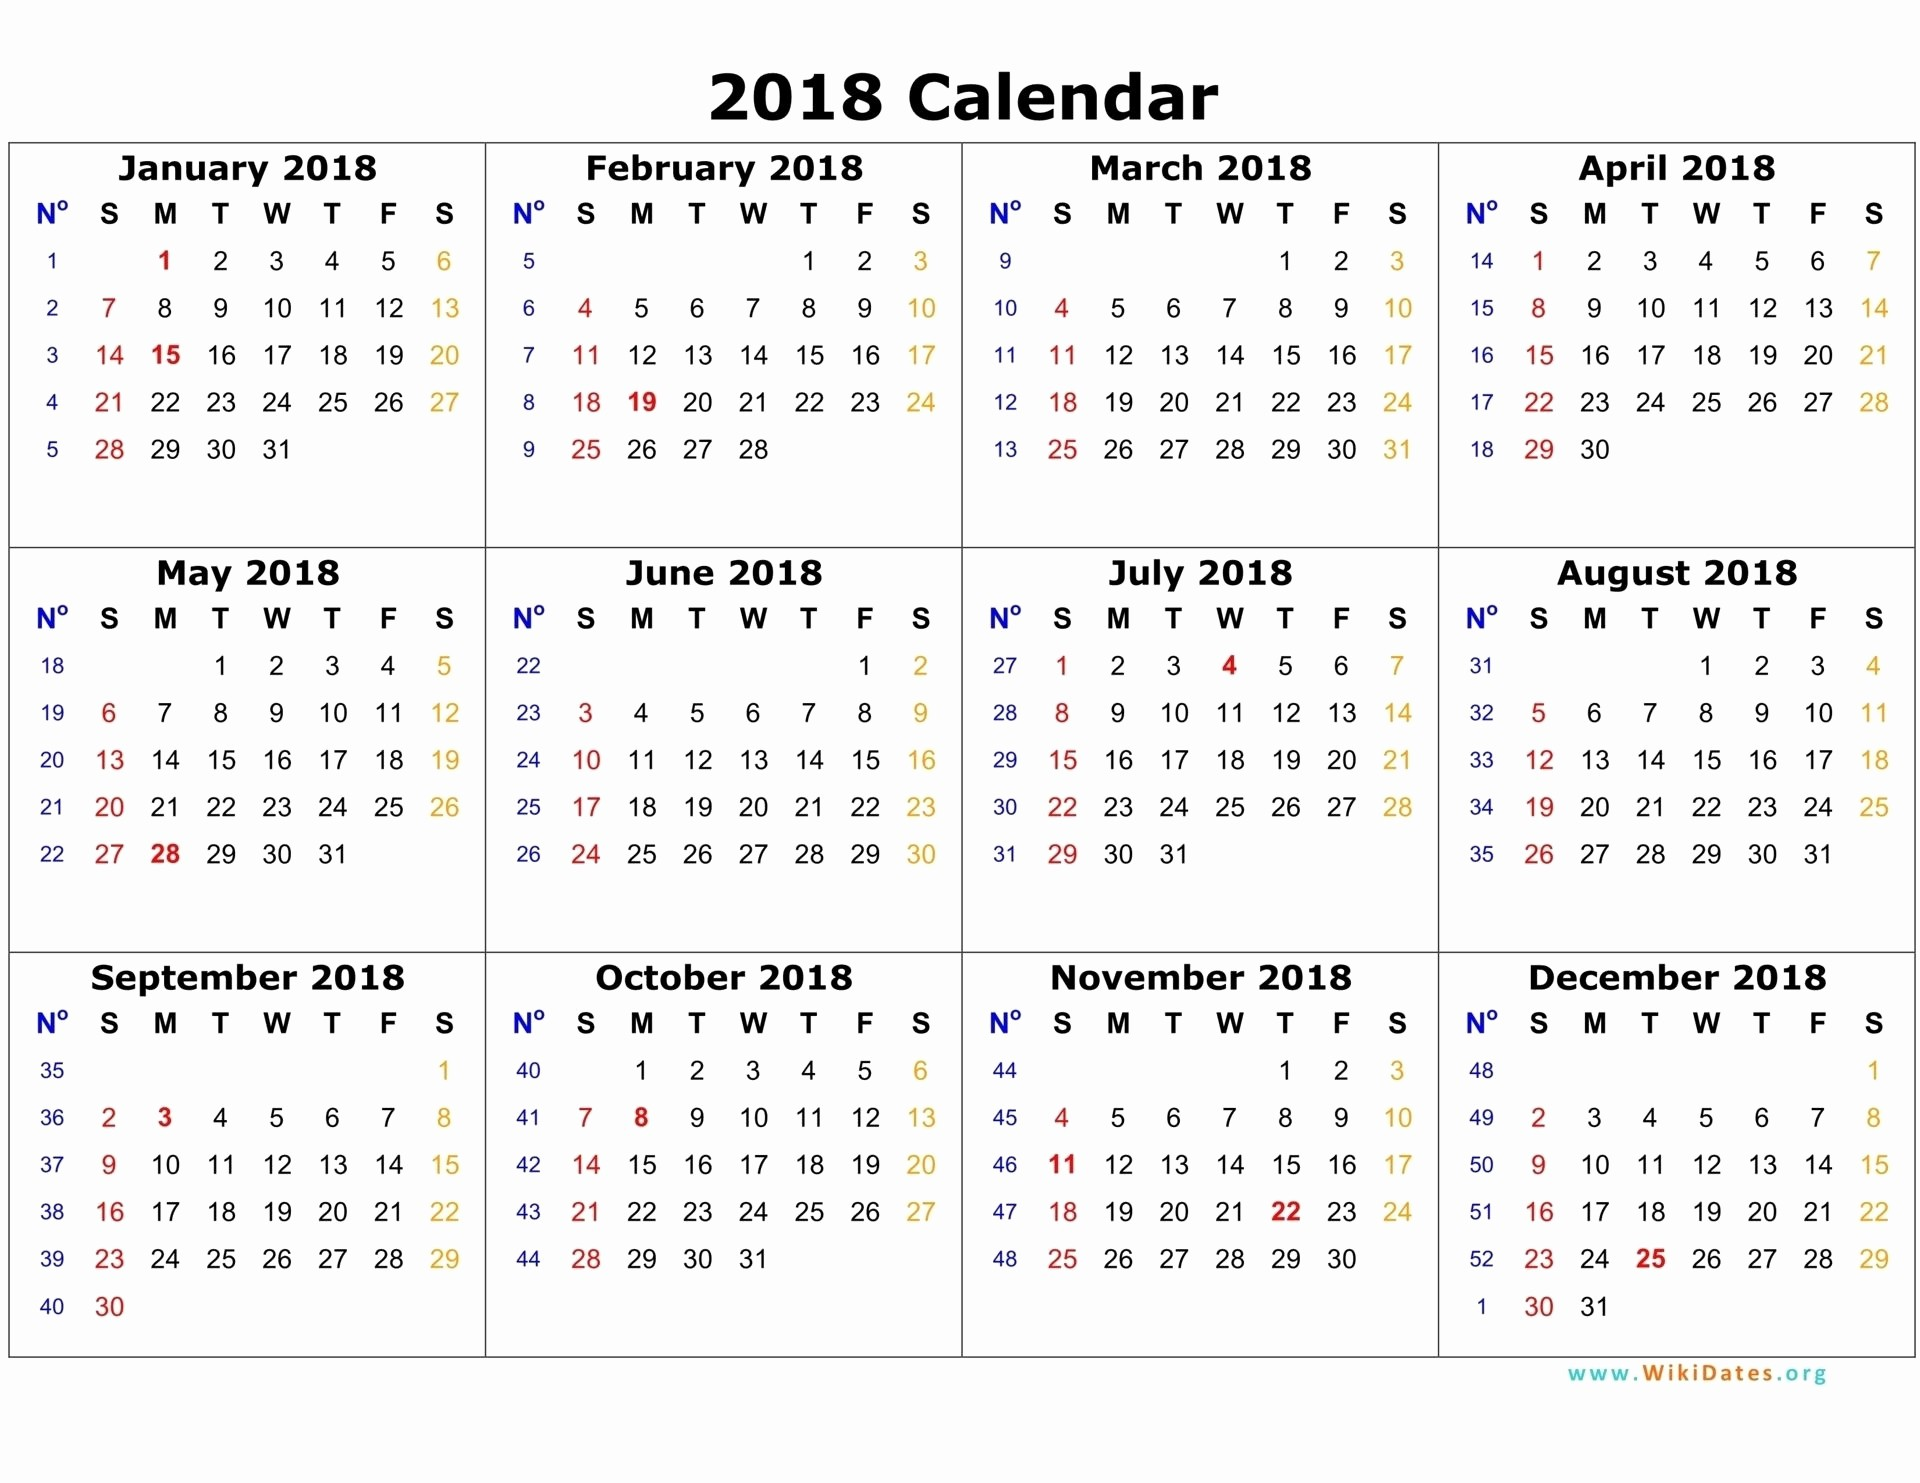 2018 calendar 12 months on one page